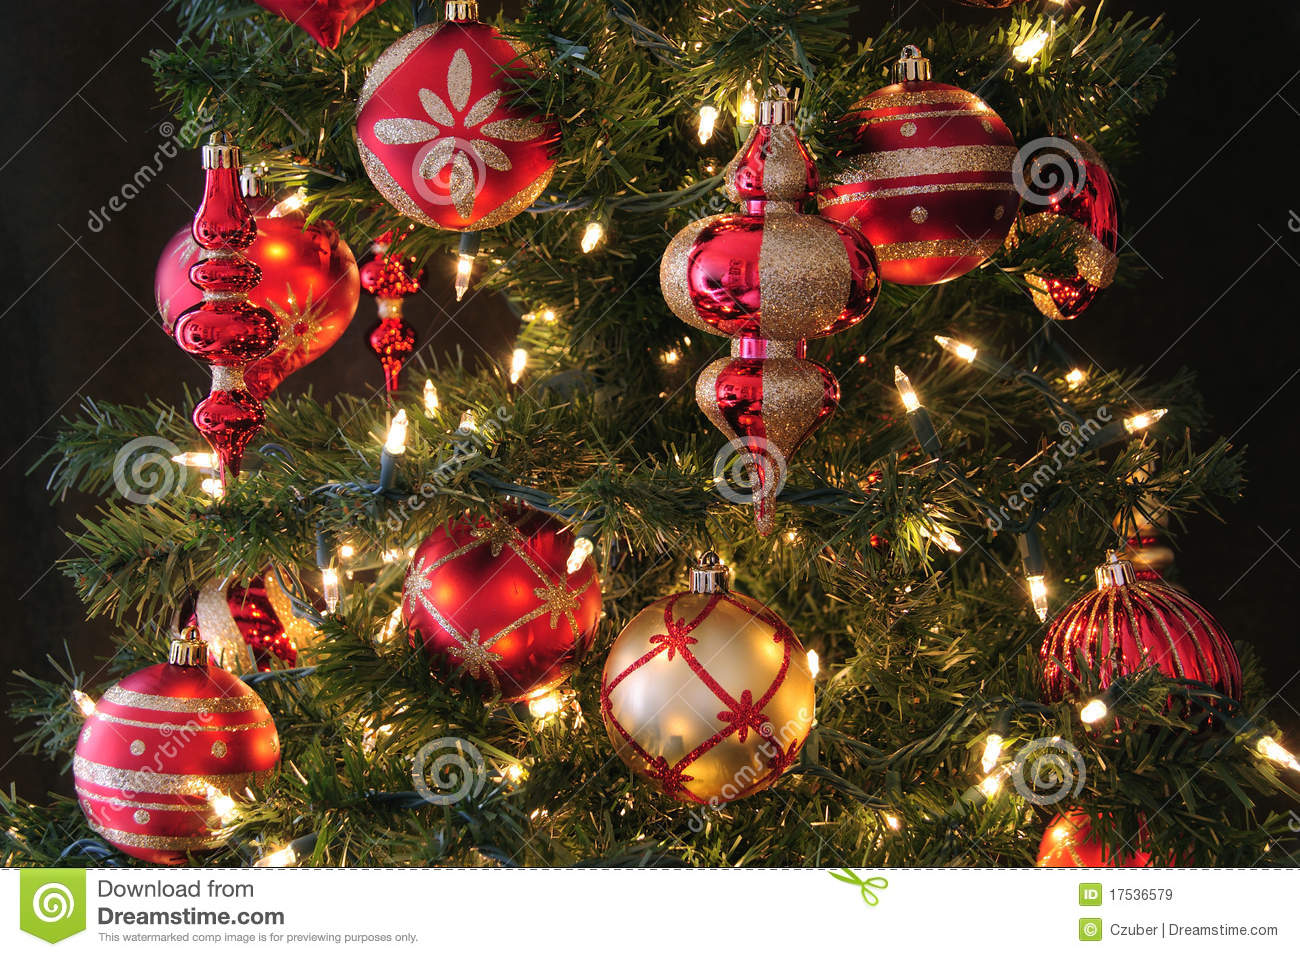 Christmas tree ornaments stock image Image of